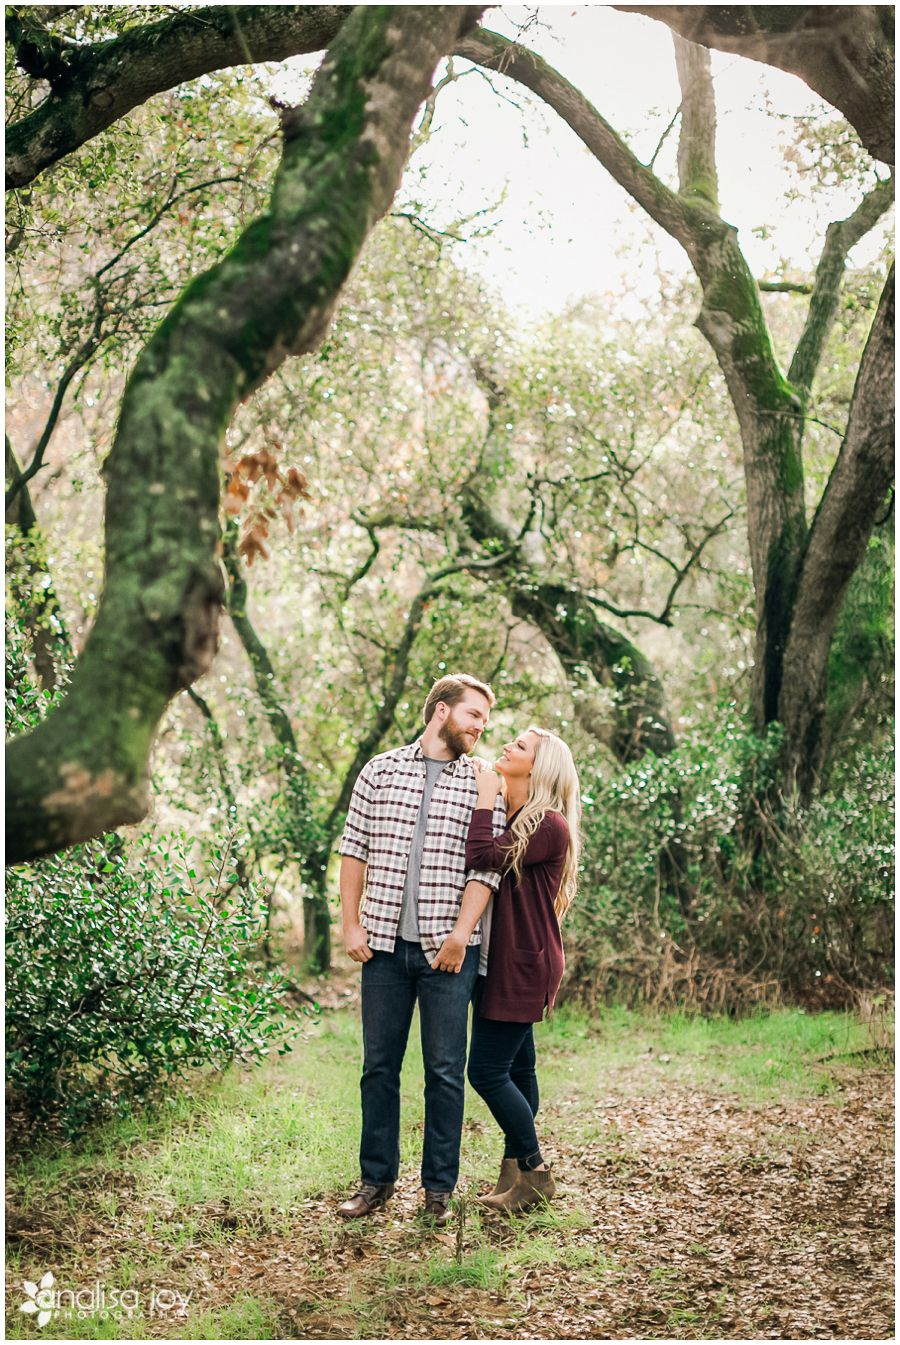 Engagement Session: Patrick & Kate | Escondido, CA | Analisa Joy Photography | San Diego, CA Photographer » Analisa Joy Photography